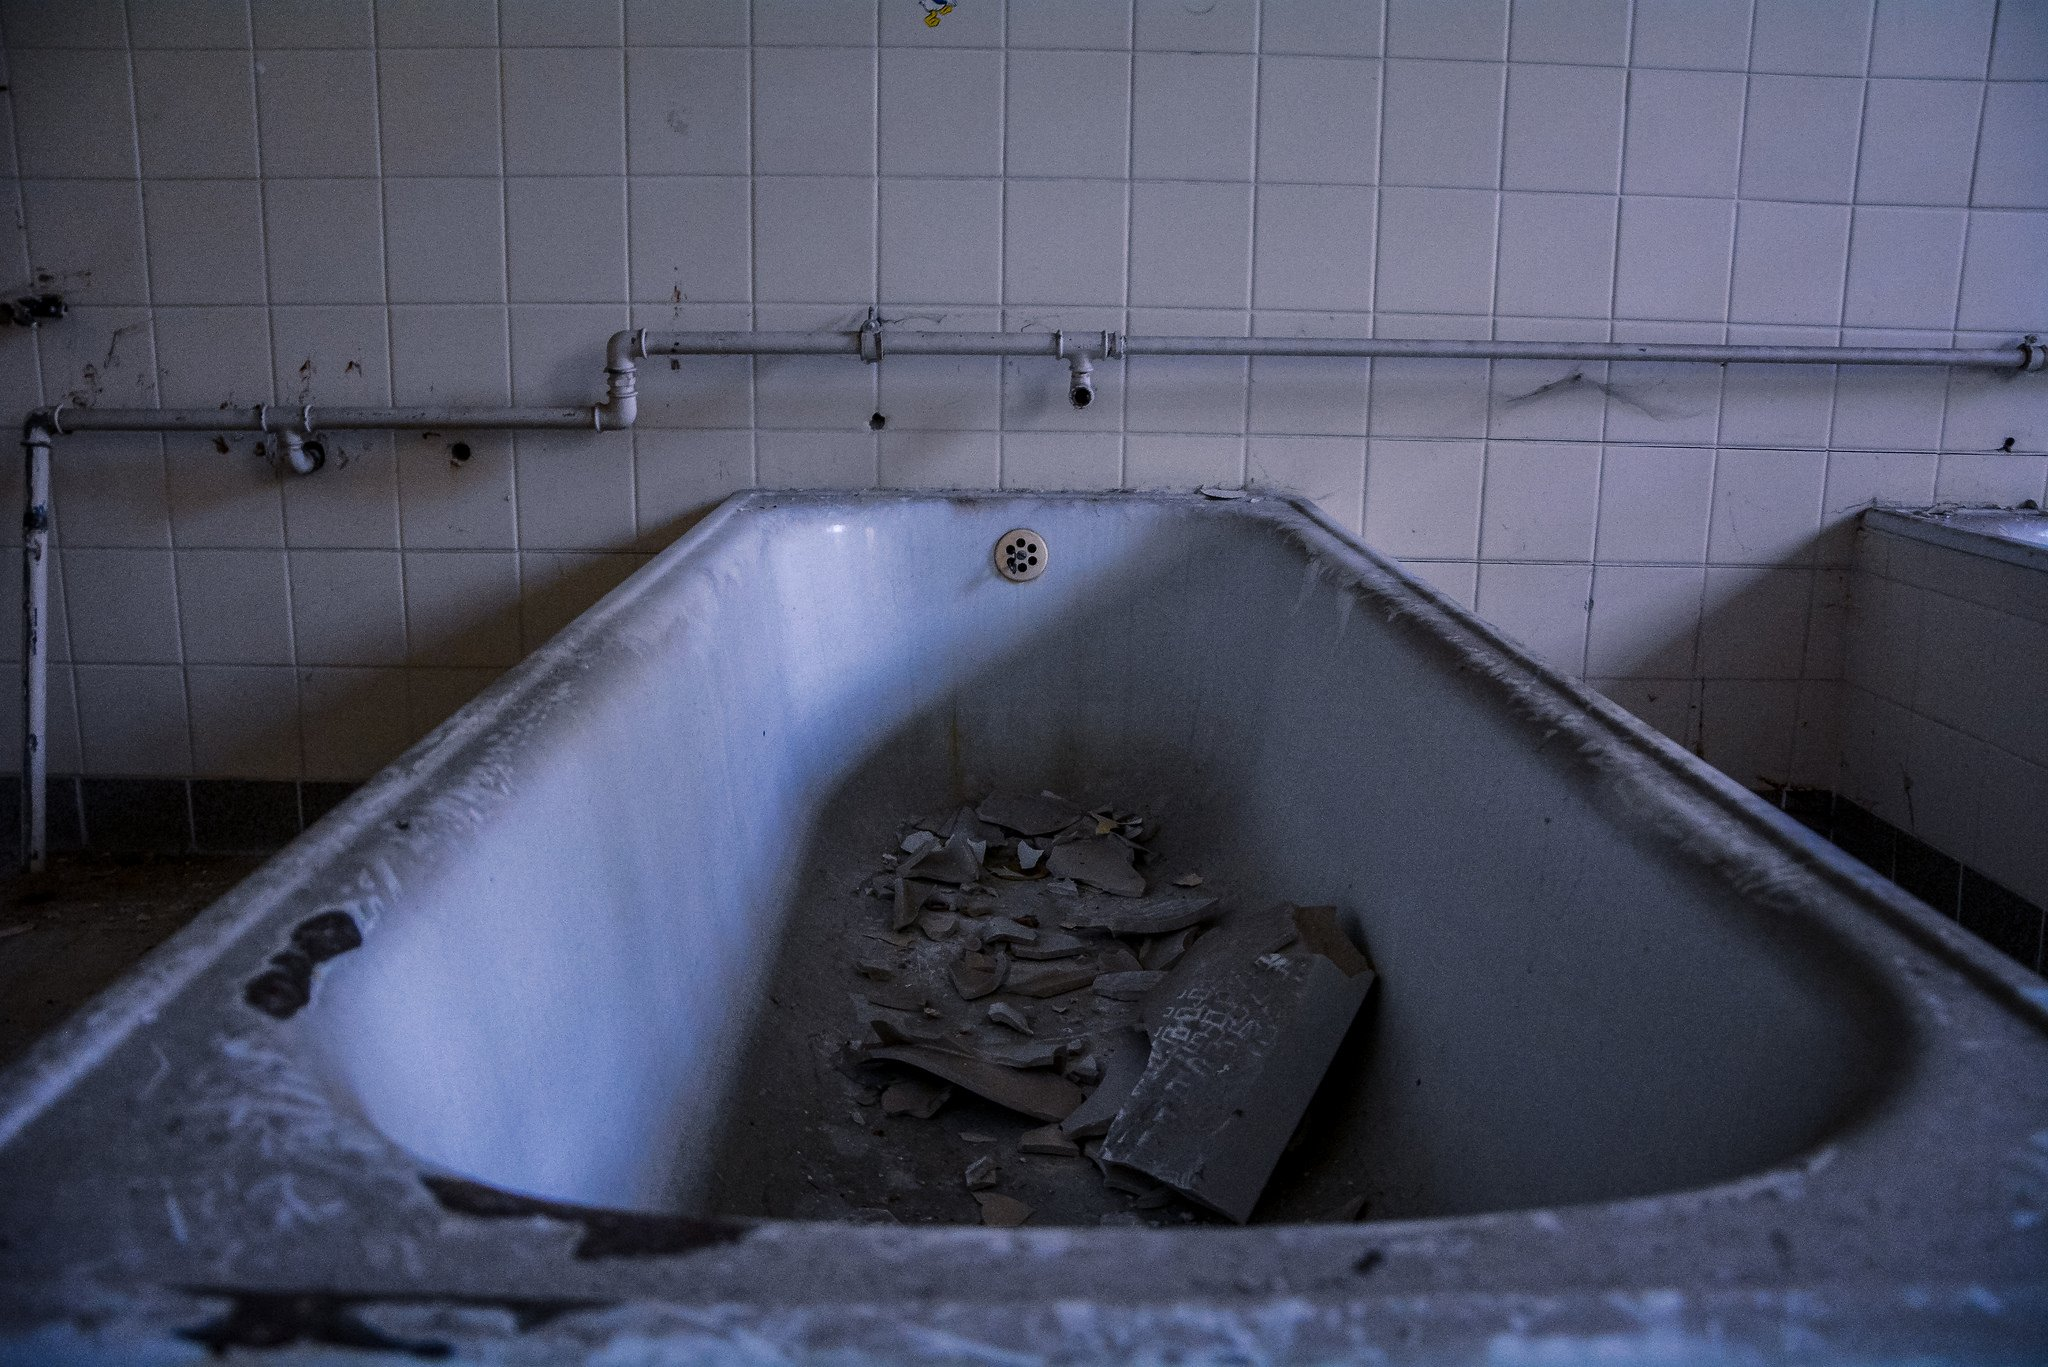 abandoned hospital berlin verlassenes krankenhaus lost places urbex ruins germany bathtub